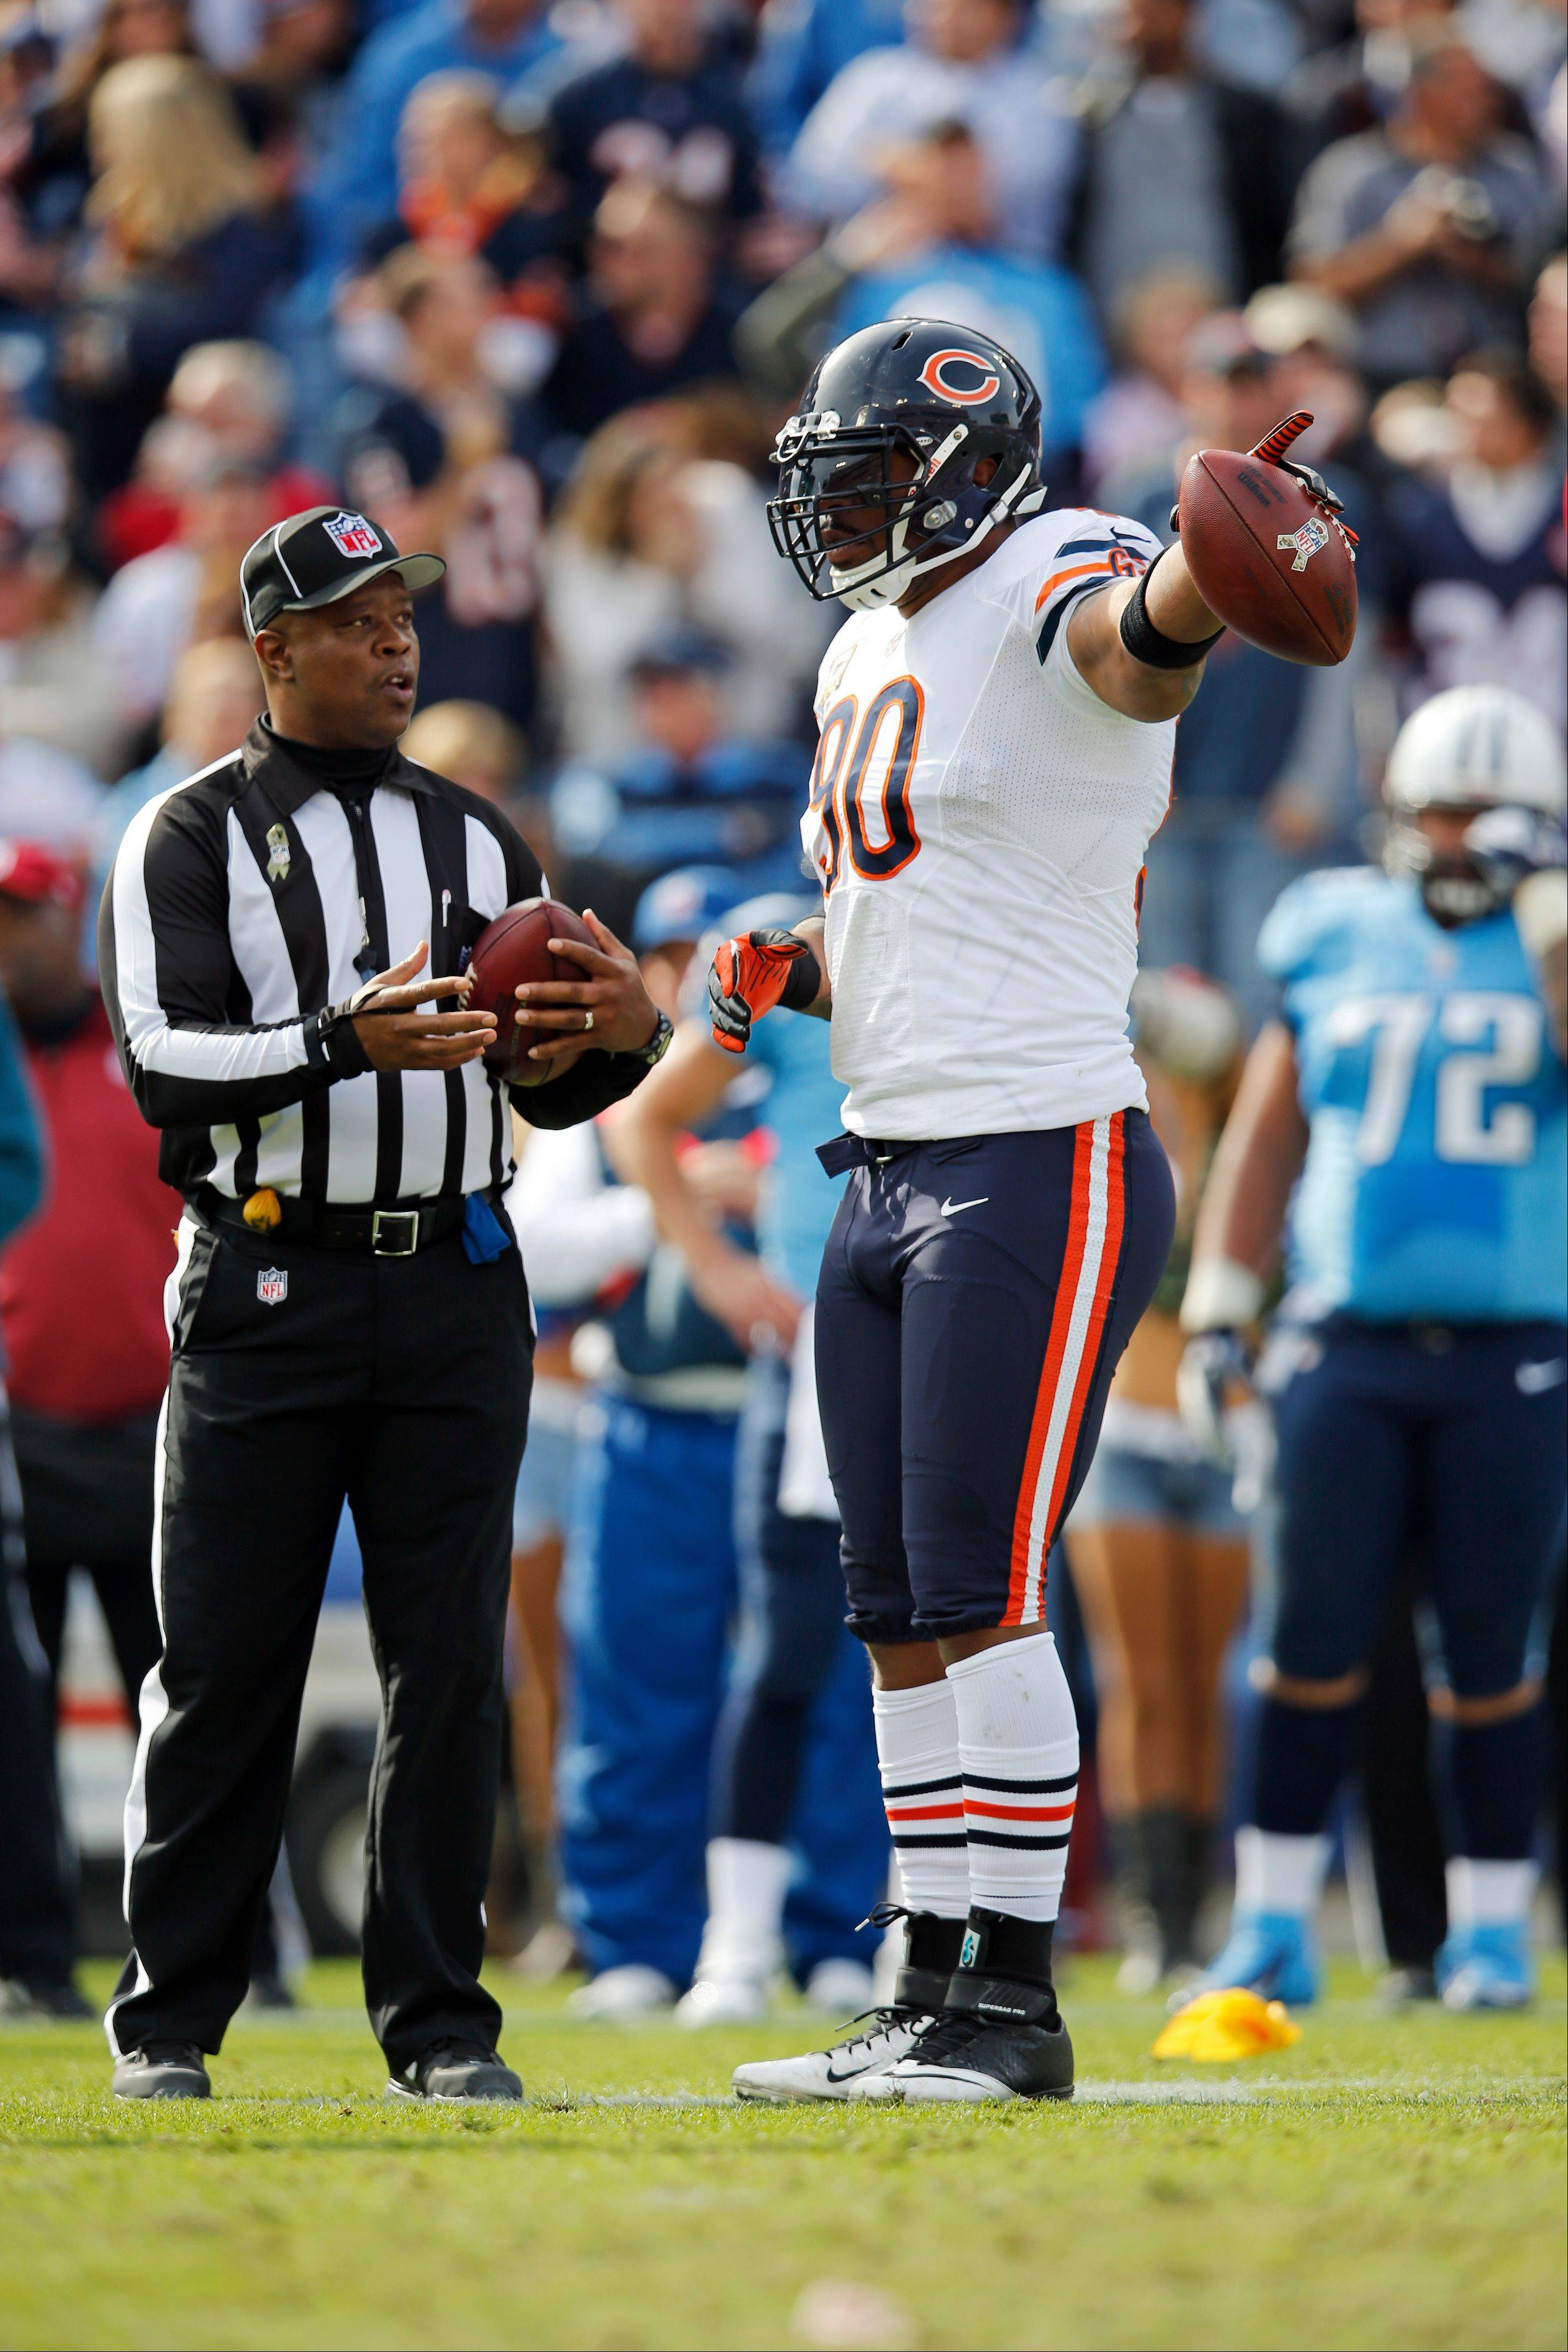 Bears defensive end Julius Peppers could step up and dazzle in Sunday night's game against the Texans, according to Mike Spellman.